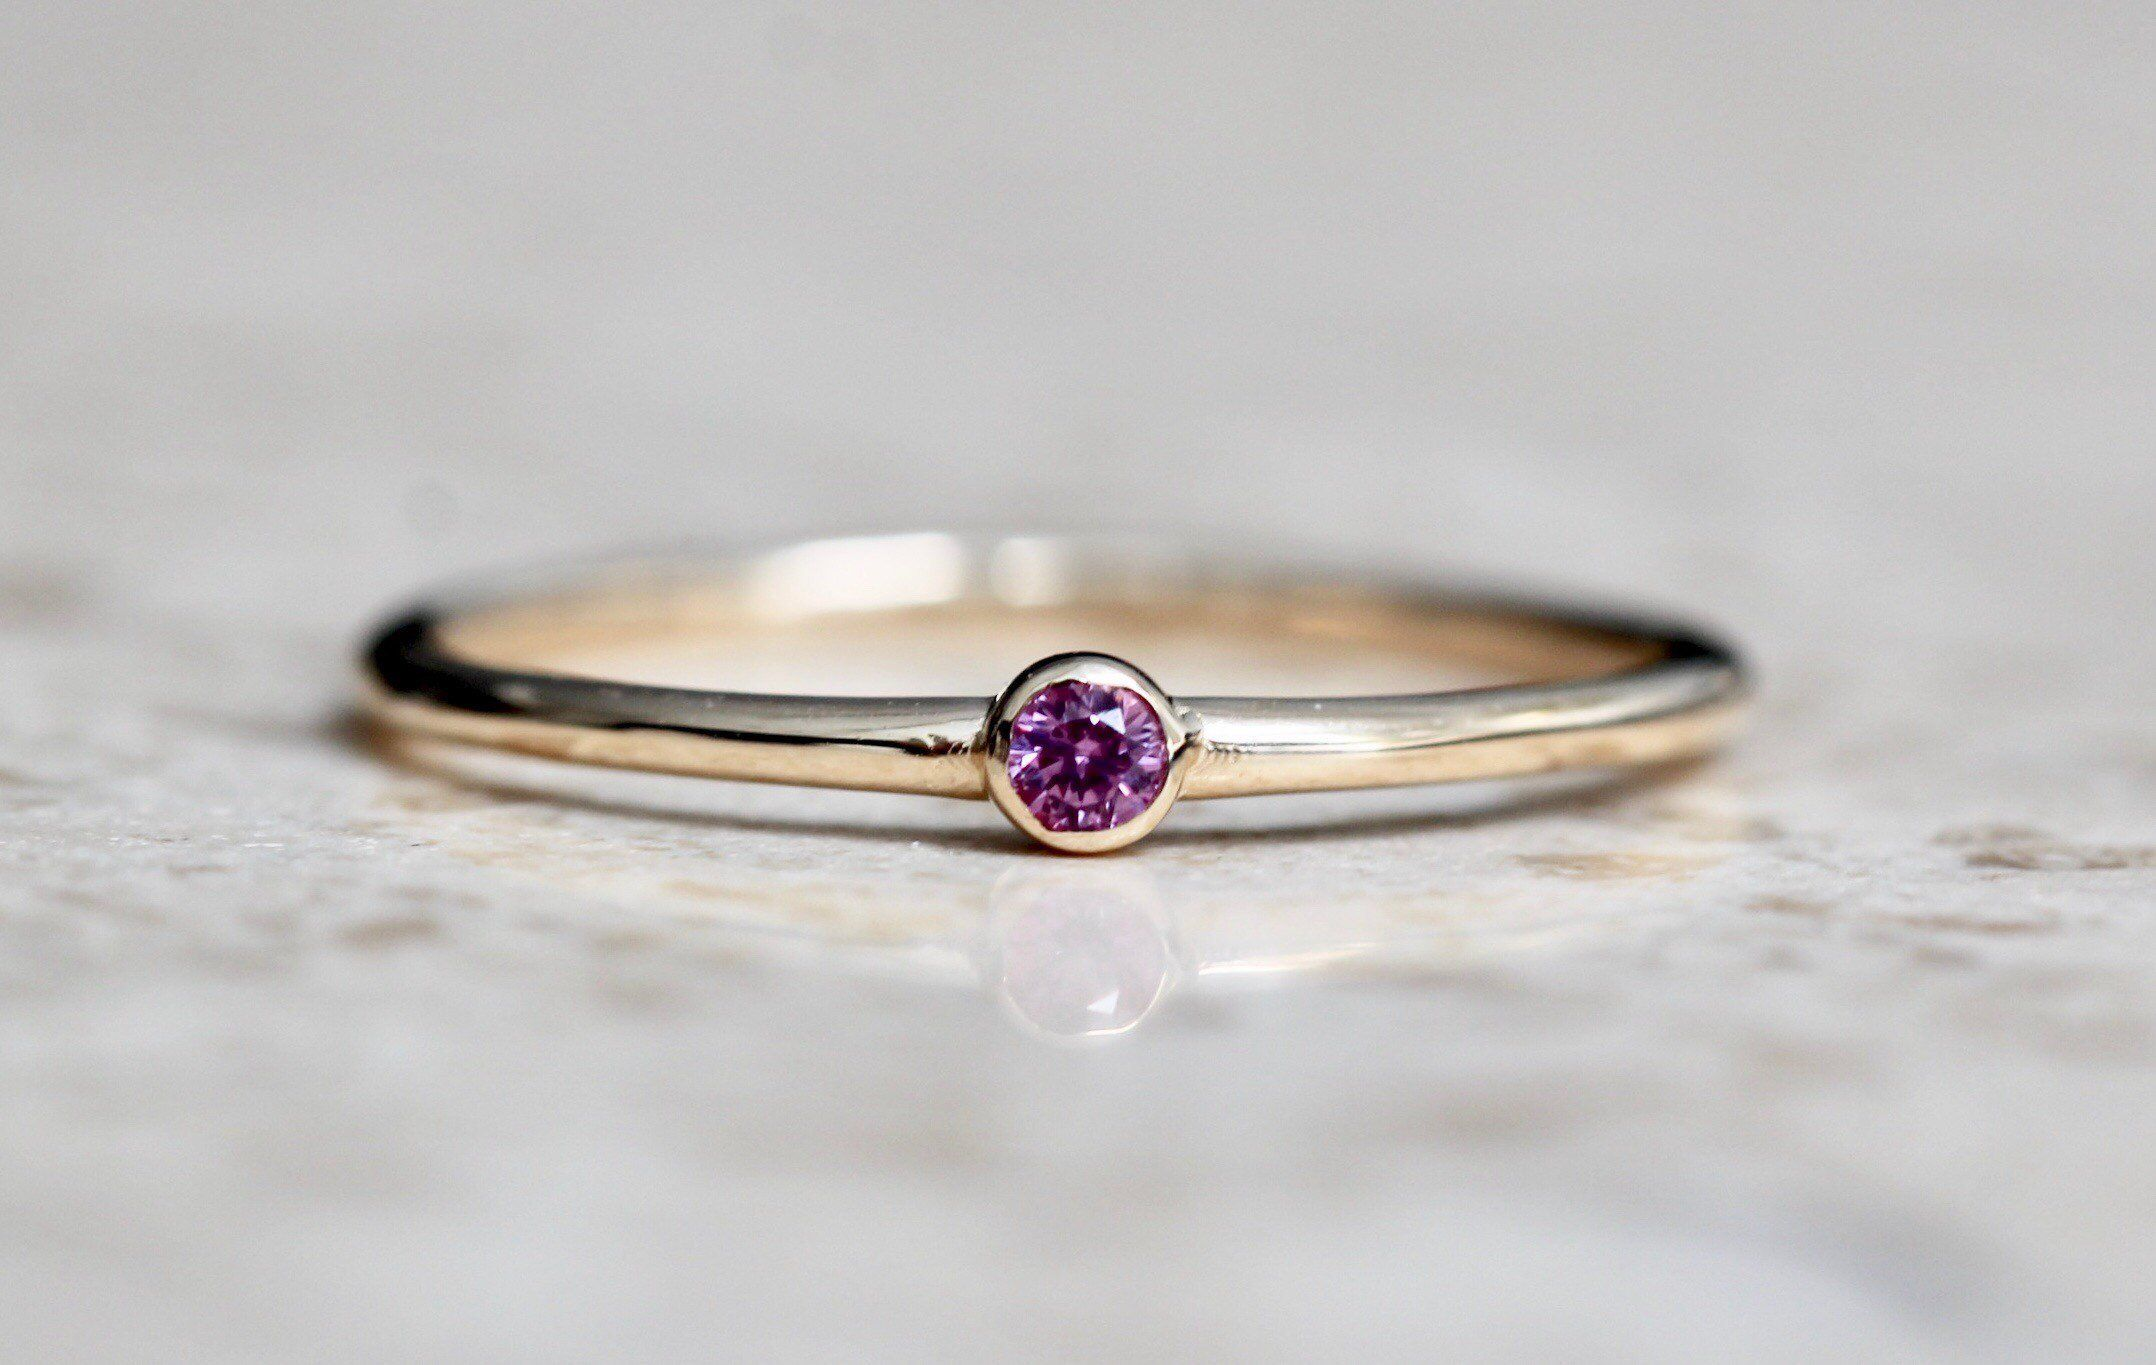 Photo of 14K Gold Tiny Pink Sapphire Ring, Pink Stone Ring, Dainty Ring, Dainty Jewelry, Stacking Ring, September Birthstone, Bezel Set